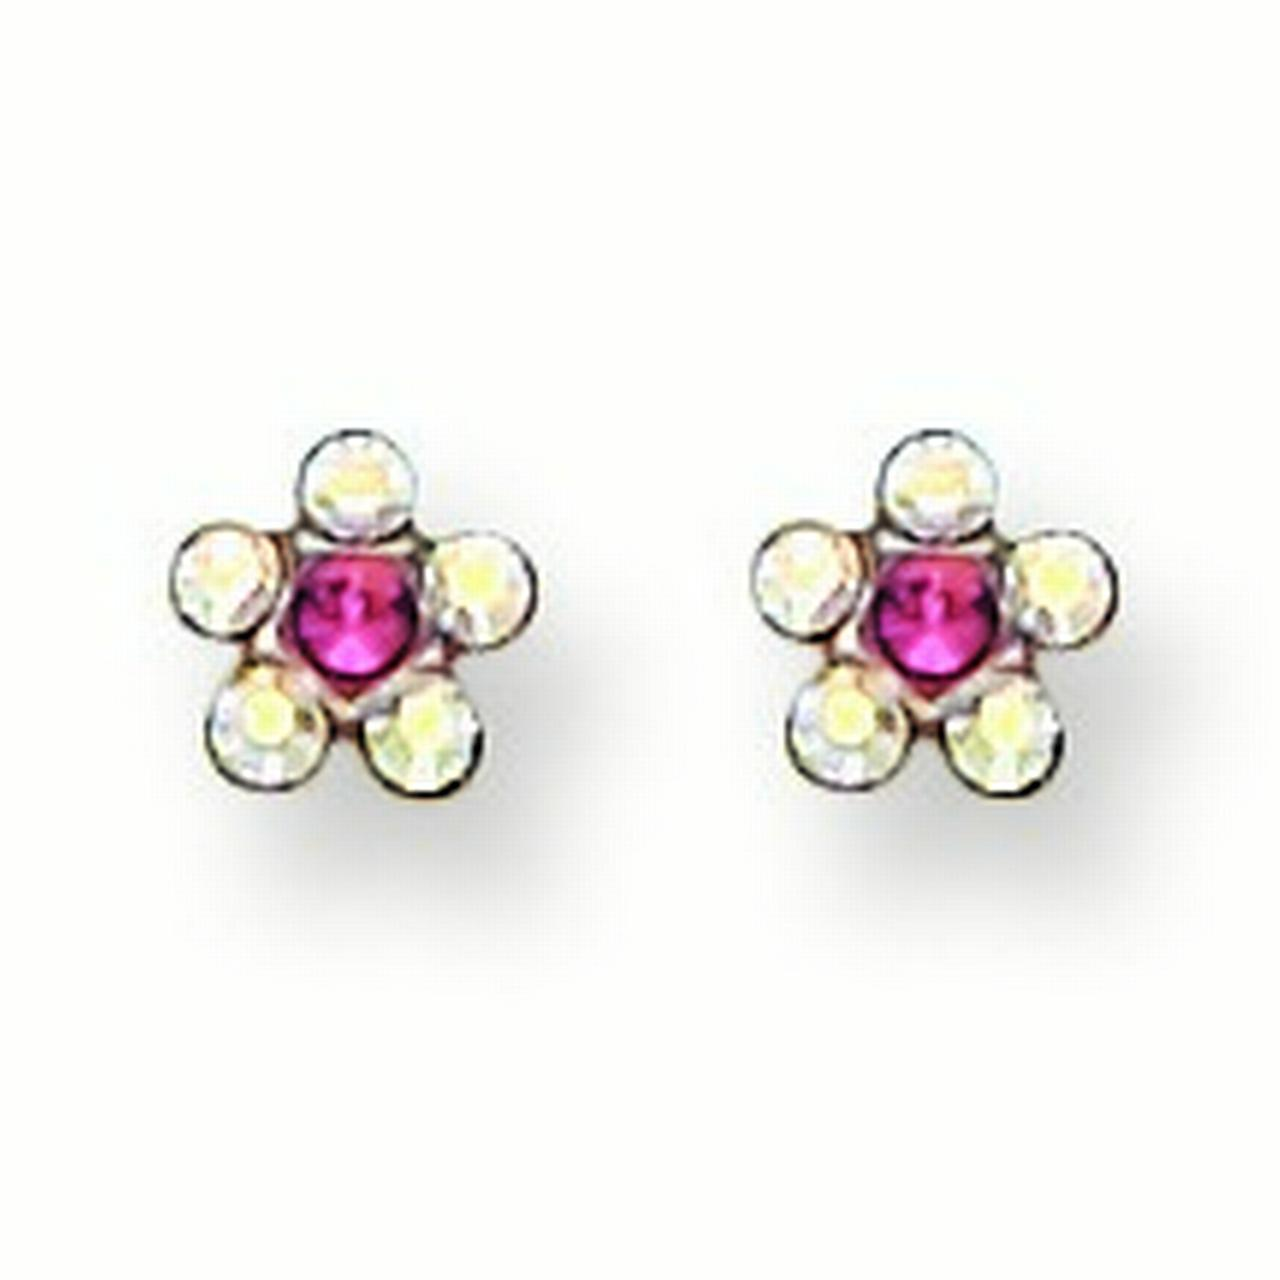 Stainless Steel Polished Clear and Rose Crystal Earrings